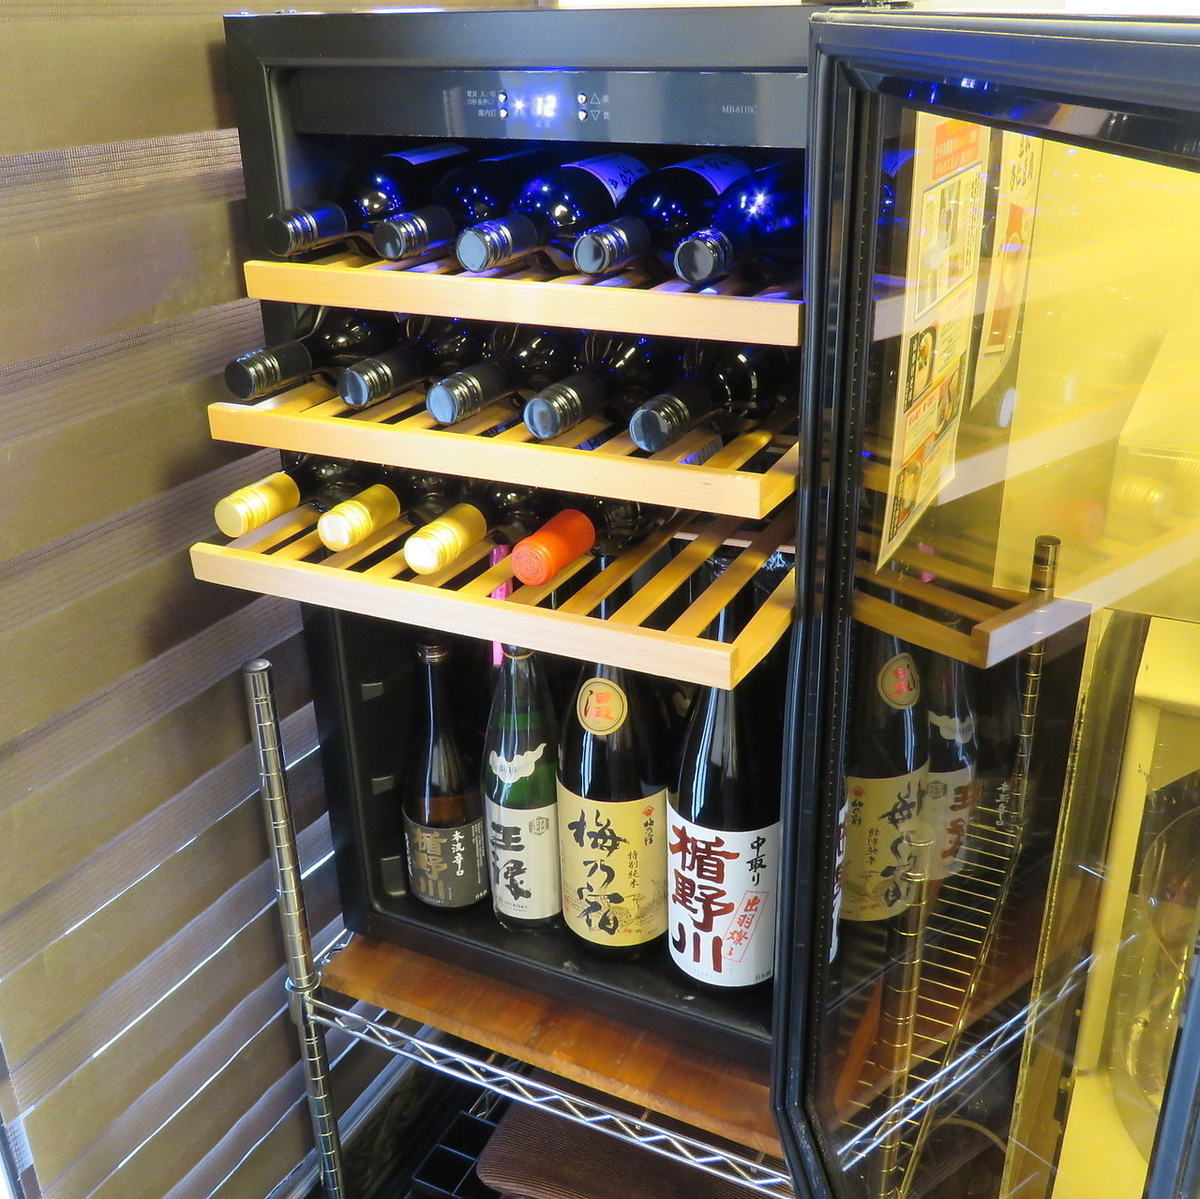 Selected sake and wine selected carefully